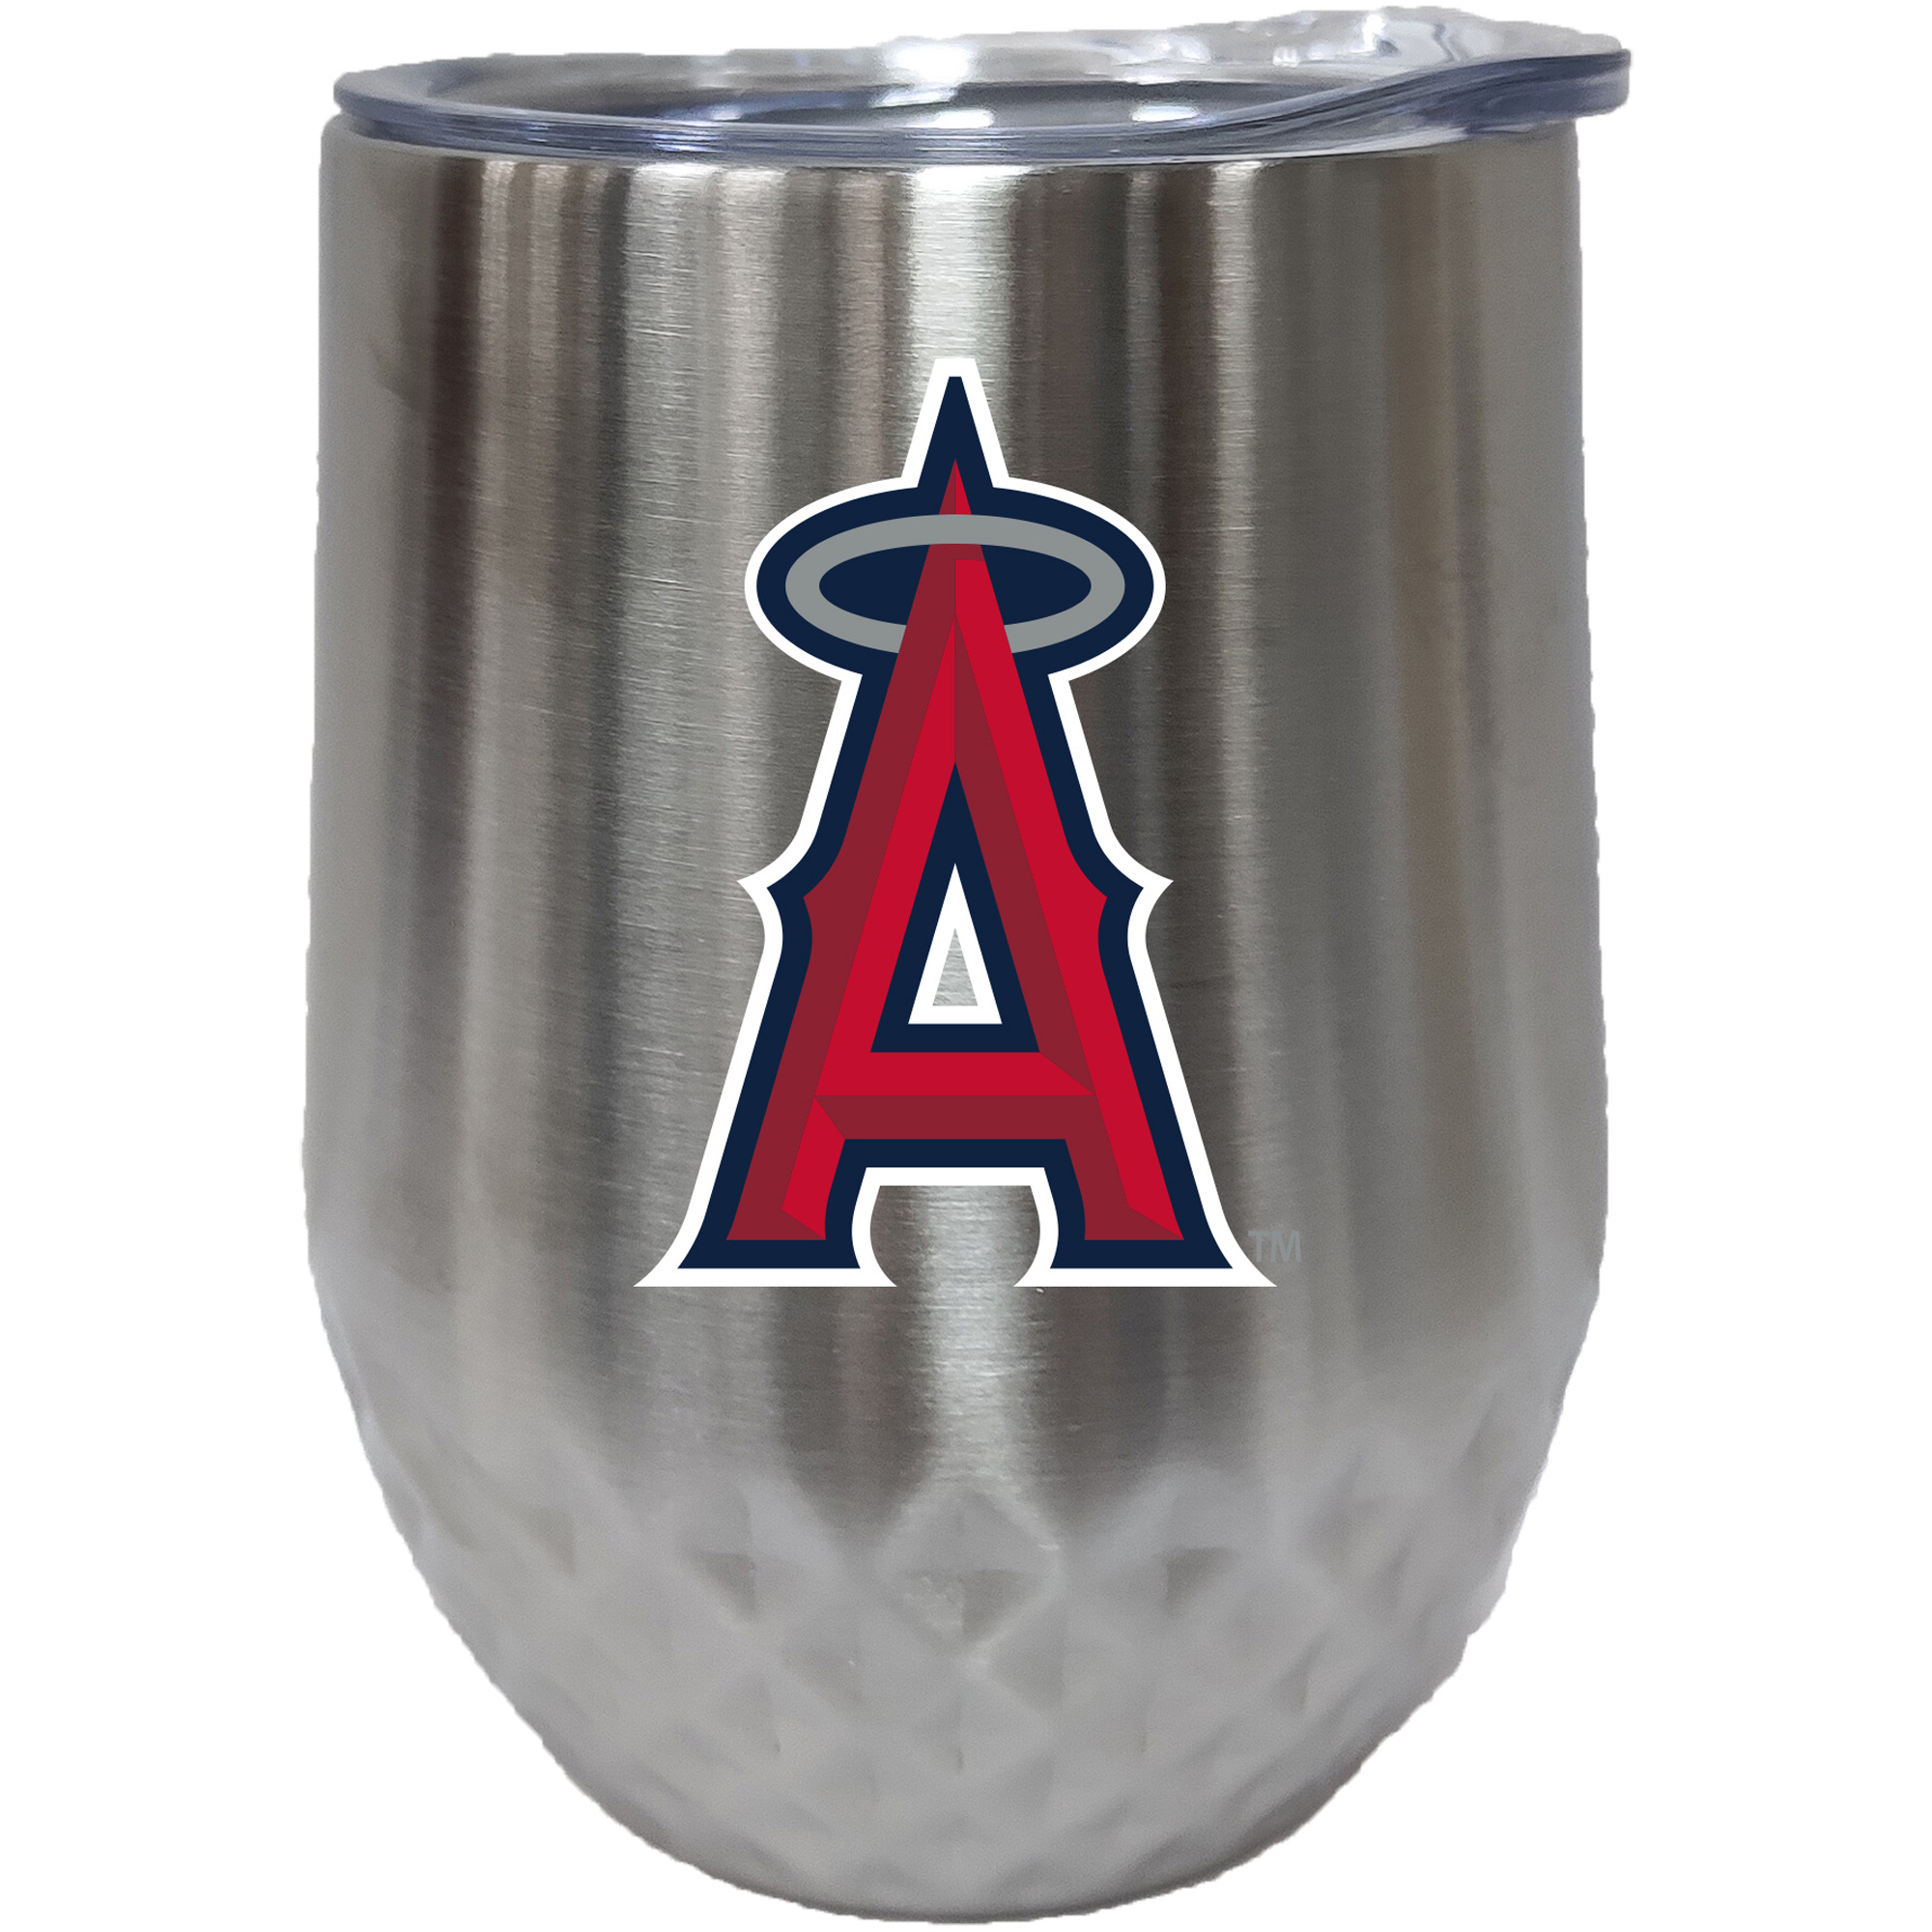 Los Angeles Angels 12oz. Stainless Steel Stemless Diamond Tumbler - No Size